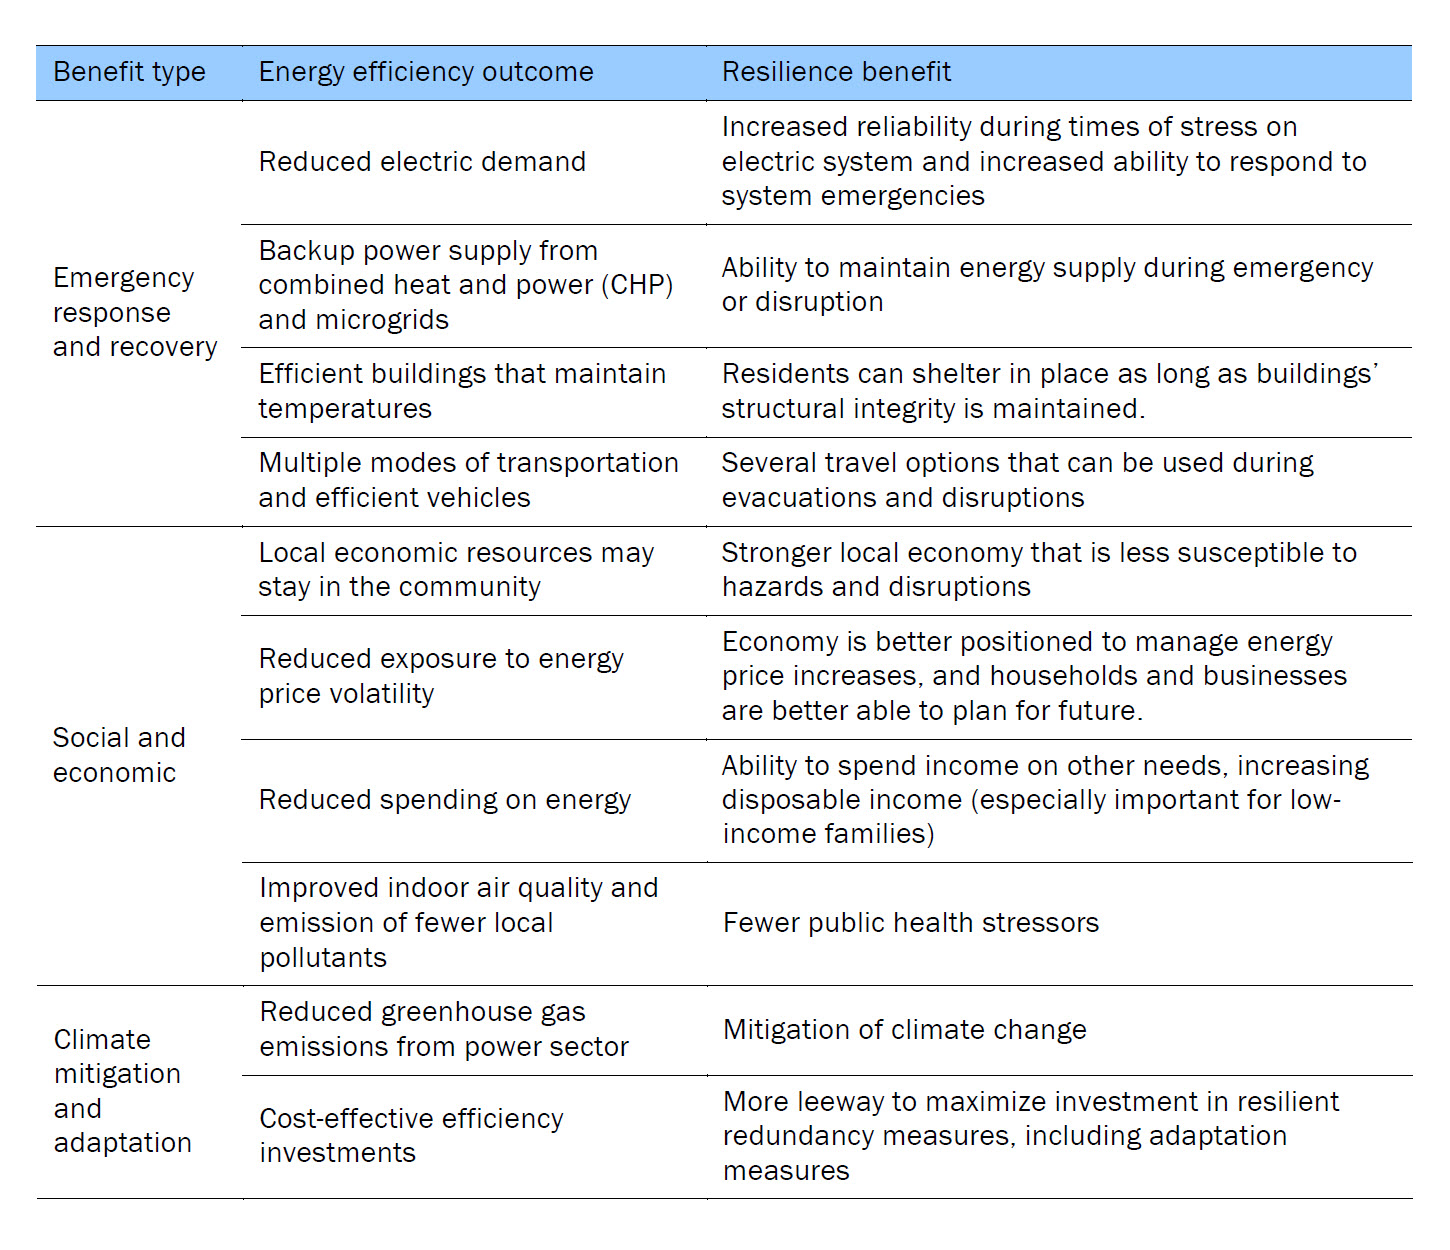 ACEEE_Energy-efficiency-benefits-resilience